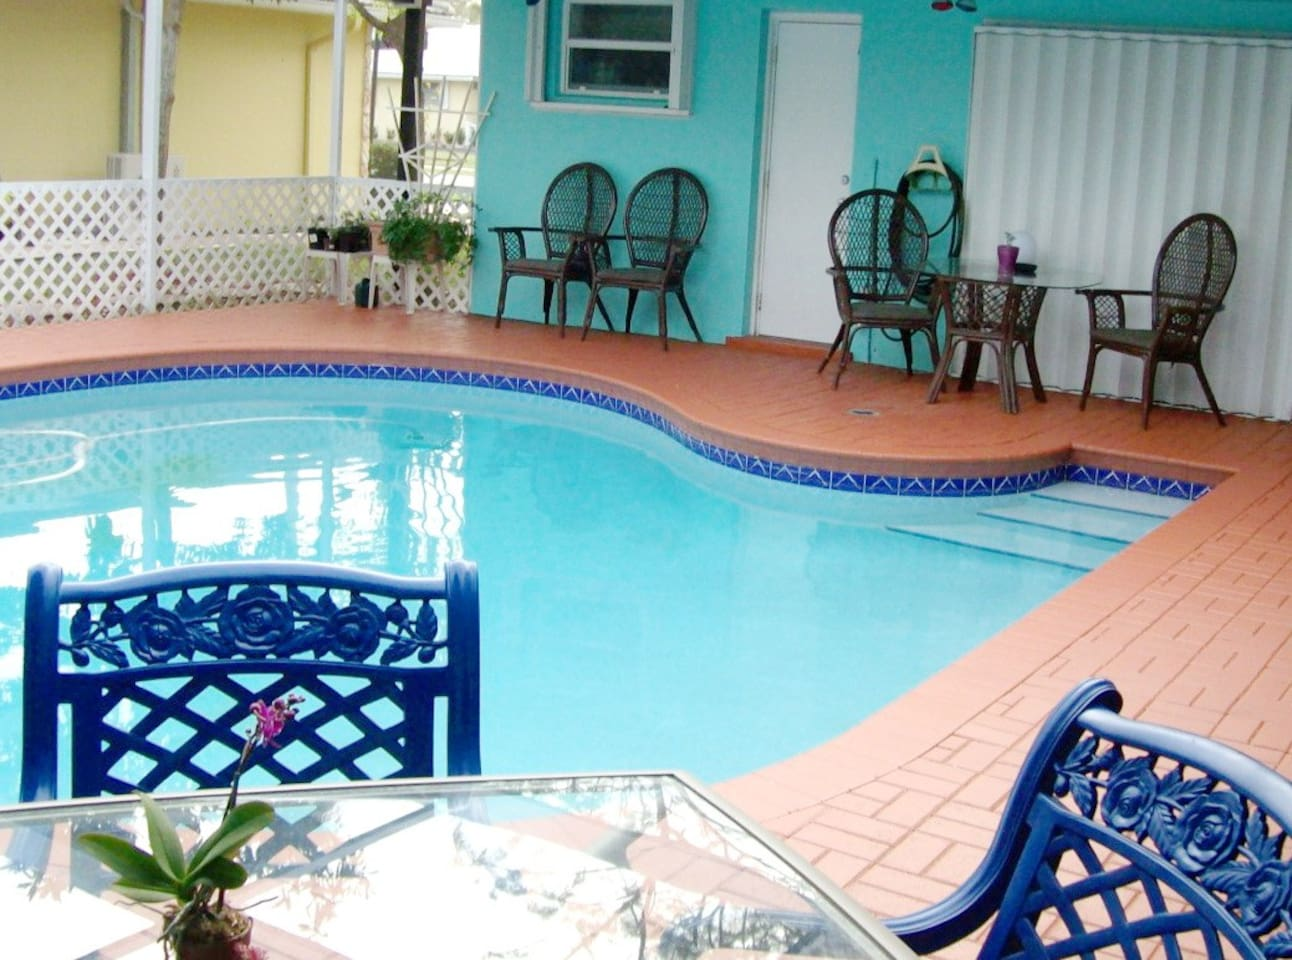 Screened in unheated salt pool/patio during the day